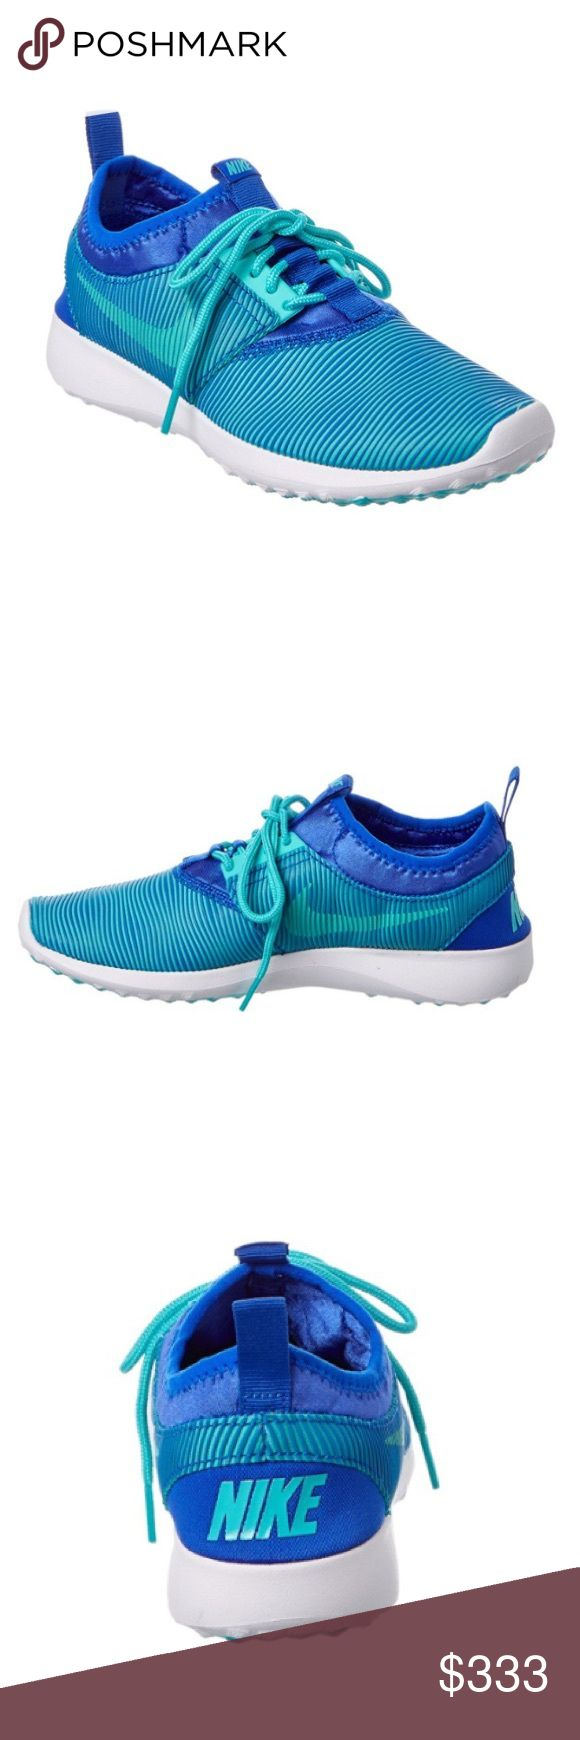 NEWEST NIKE SHOES Authentic NEW IN BOX. Women's size 7.5 NIKES!! Stunning bright blue color! New style selling out Very quickly. Ships asap! USE OFFER BUTTON🎉👍bundle to save more!  NO TRADES❌no pp❌ Nike Shoes Sneakers